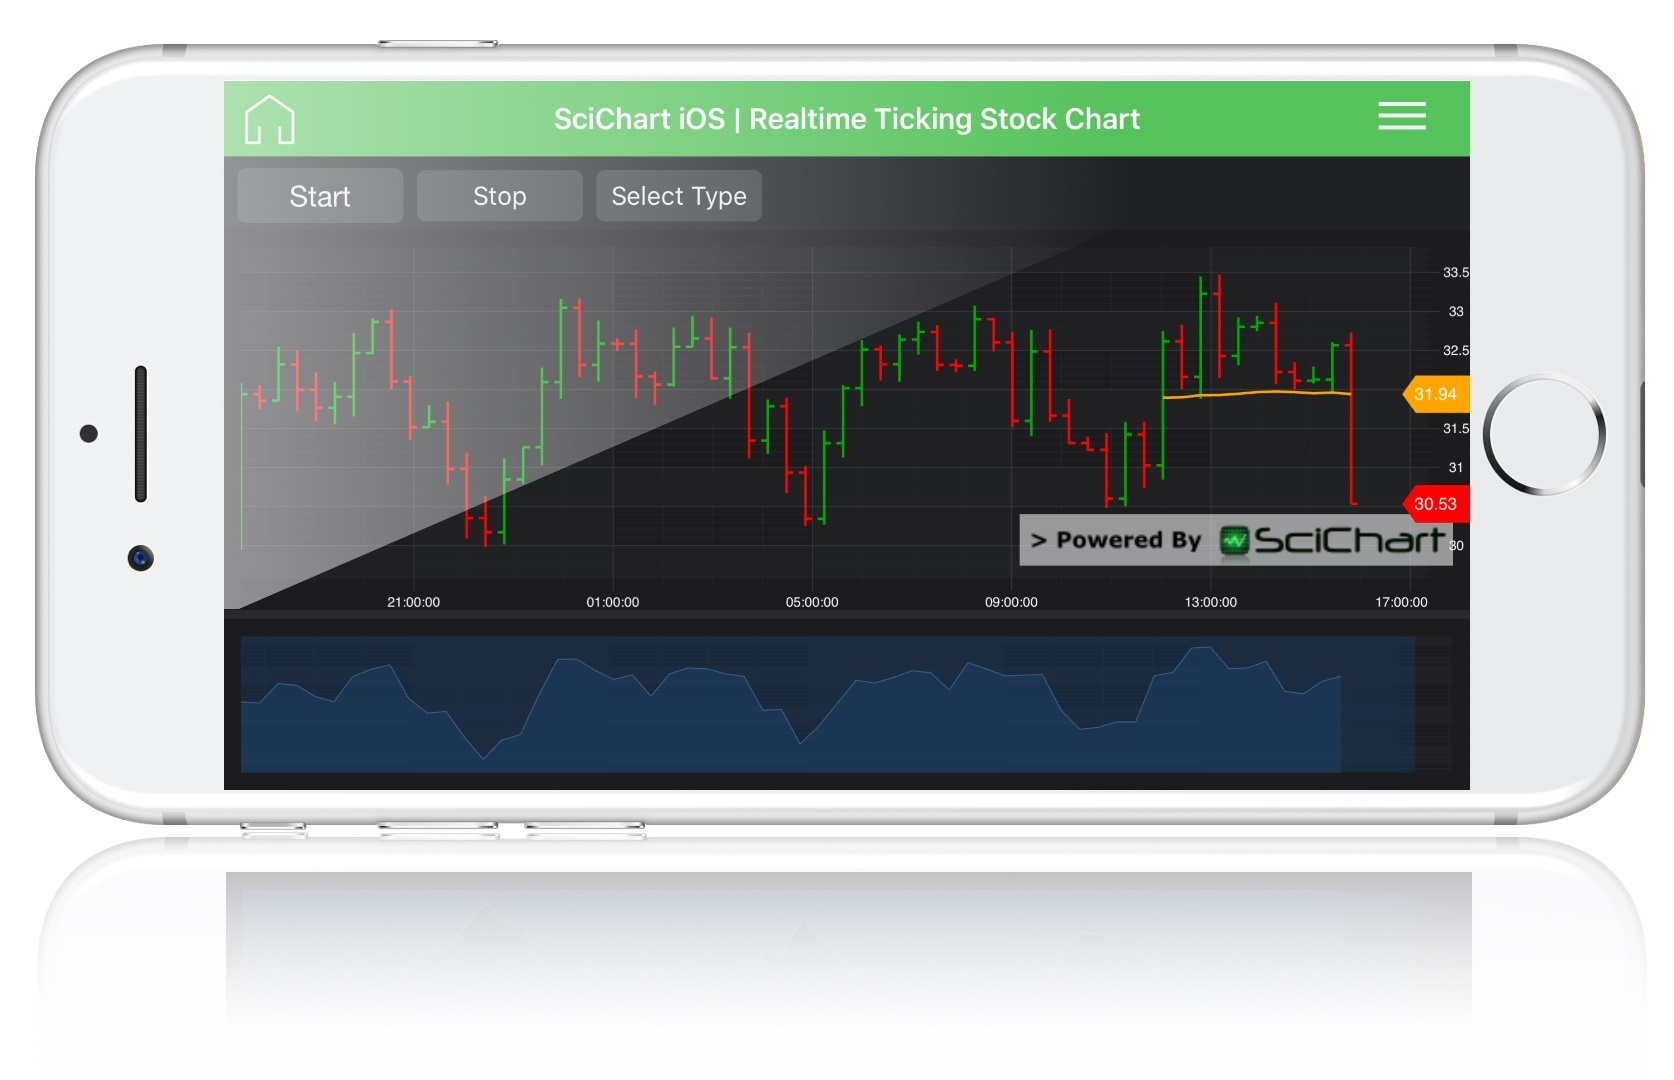 iOS Realtime Ticking Stock Charts